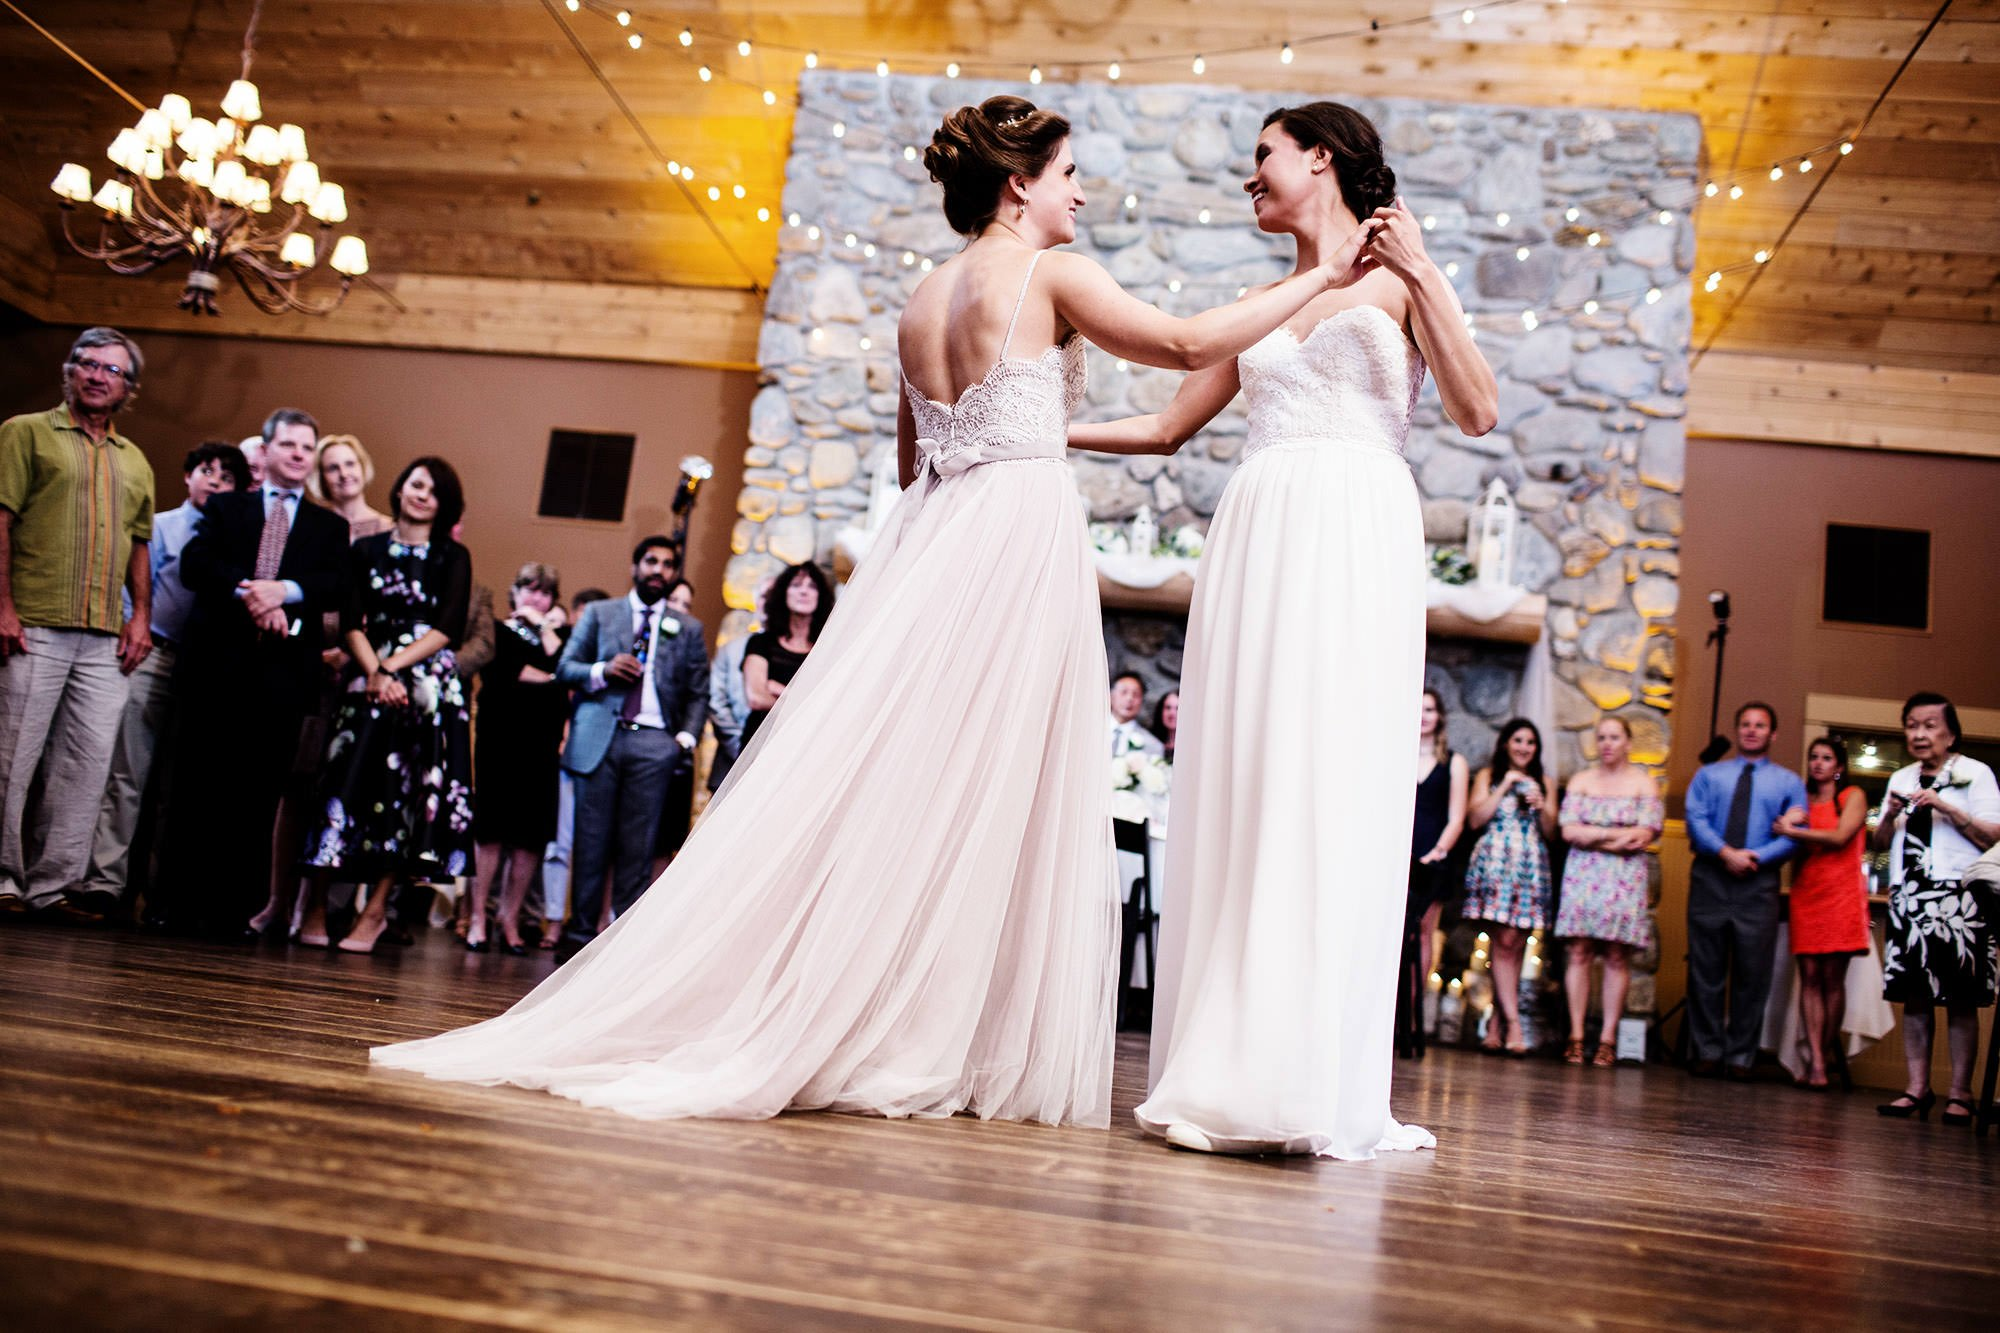 The brides enjoy their first dance during the reception at The Ponds at Bolton Valley.